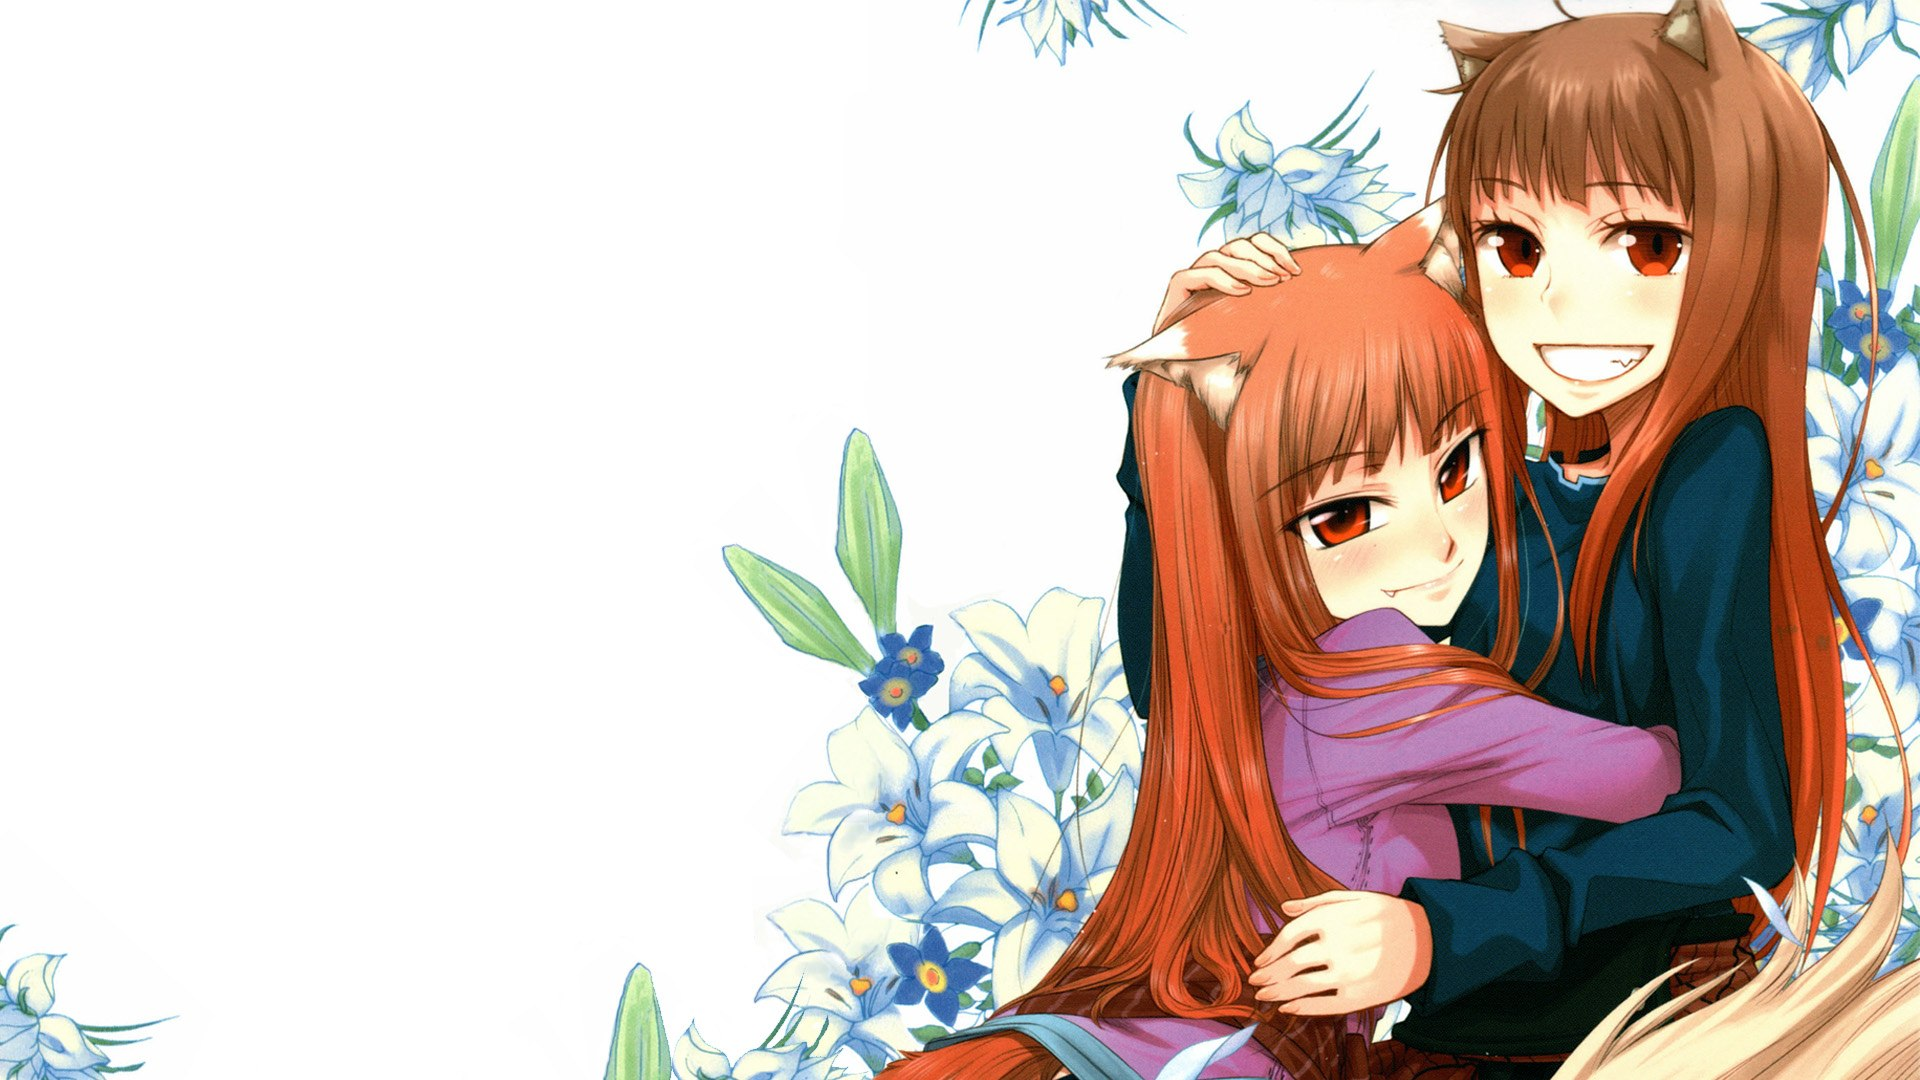 Download Spice And Wolf 20416 1920x1080 Px High Definition Wallpaper